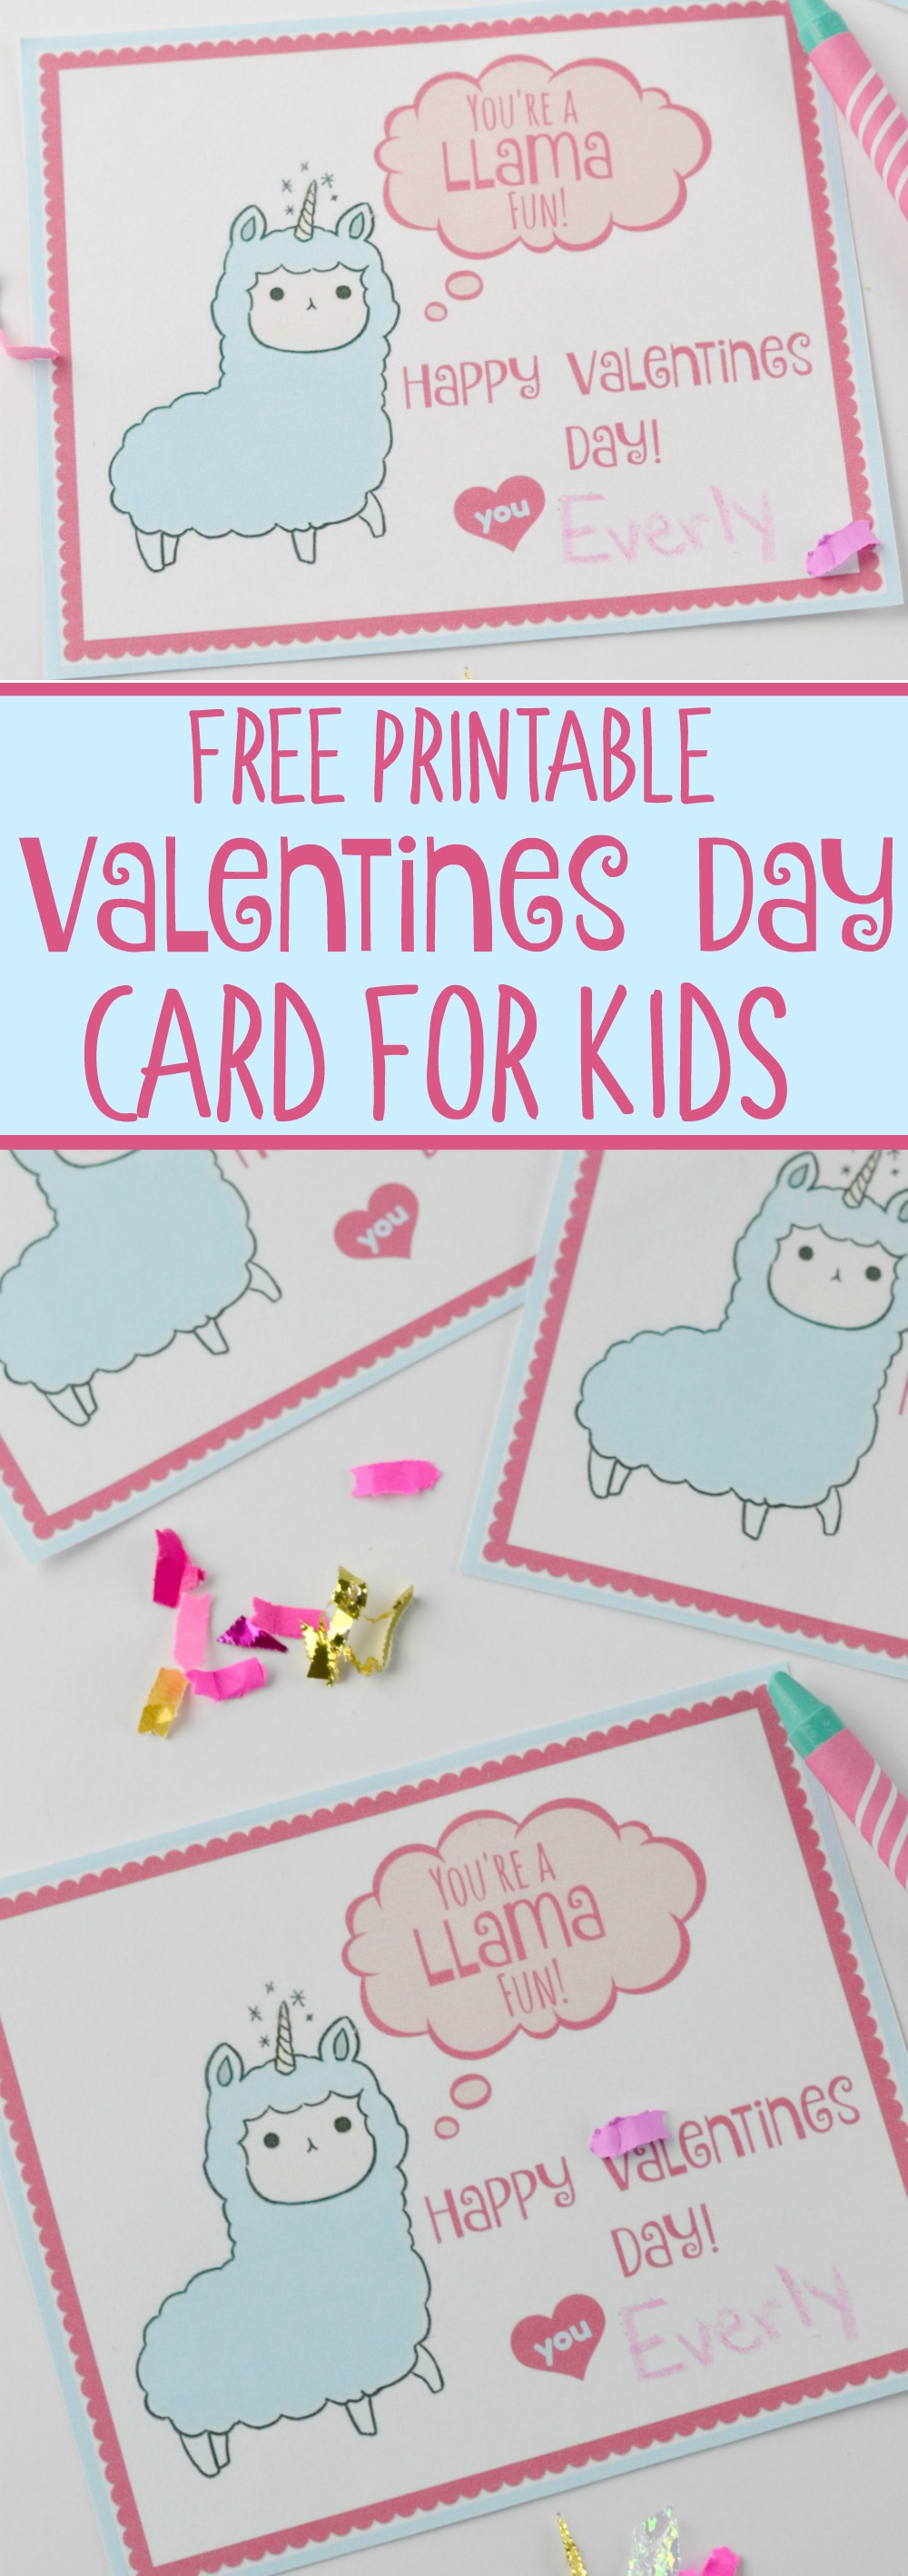 Free Printable Valentines Day Card for Kids #valentinesday #diyvalentine #diy #easy #valentine #kids #holiday